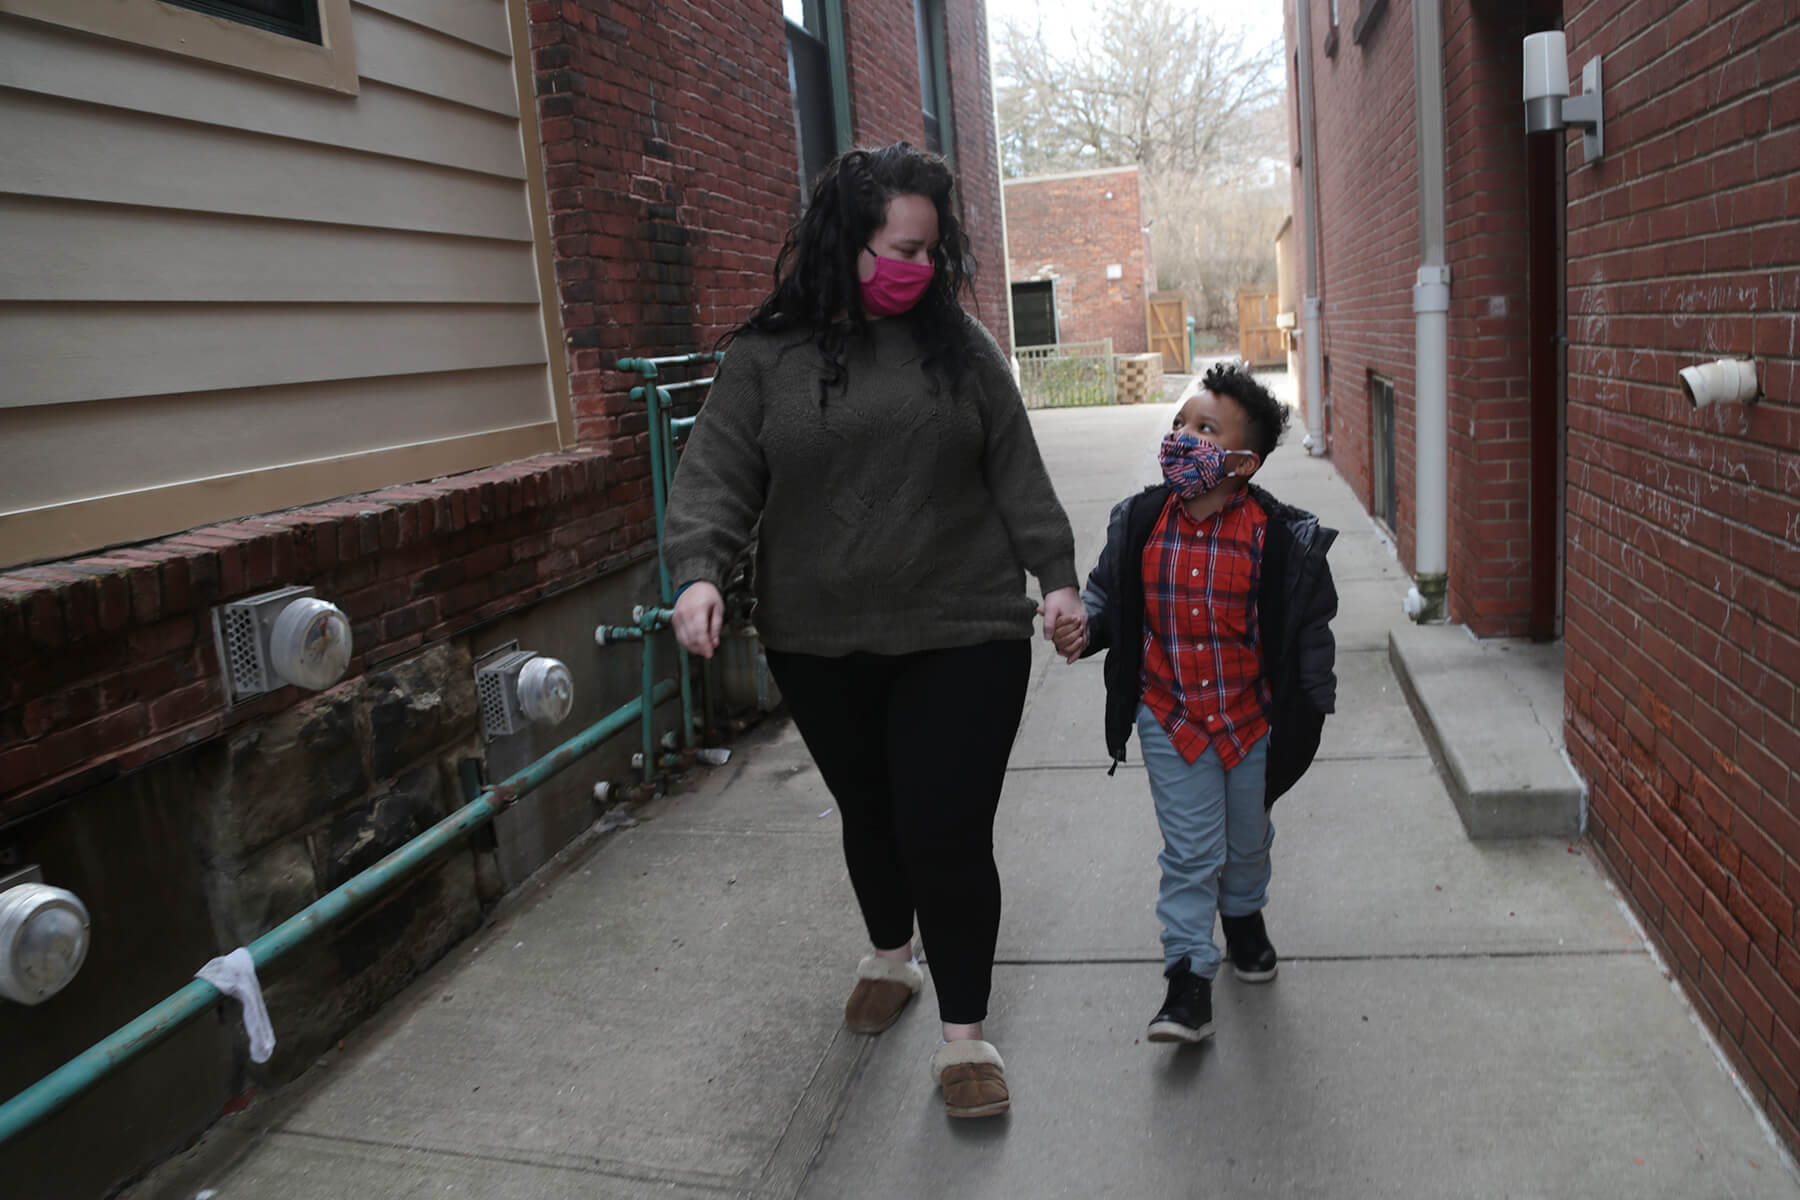 """Amber J. walks outside with her 5-year-old son Laron. """"My mom always said if you do the right thing, God will bless you,"""" she said. """"And it's finally looking up."""" (Photo by Ryan Loew/PublicSource)"""